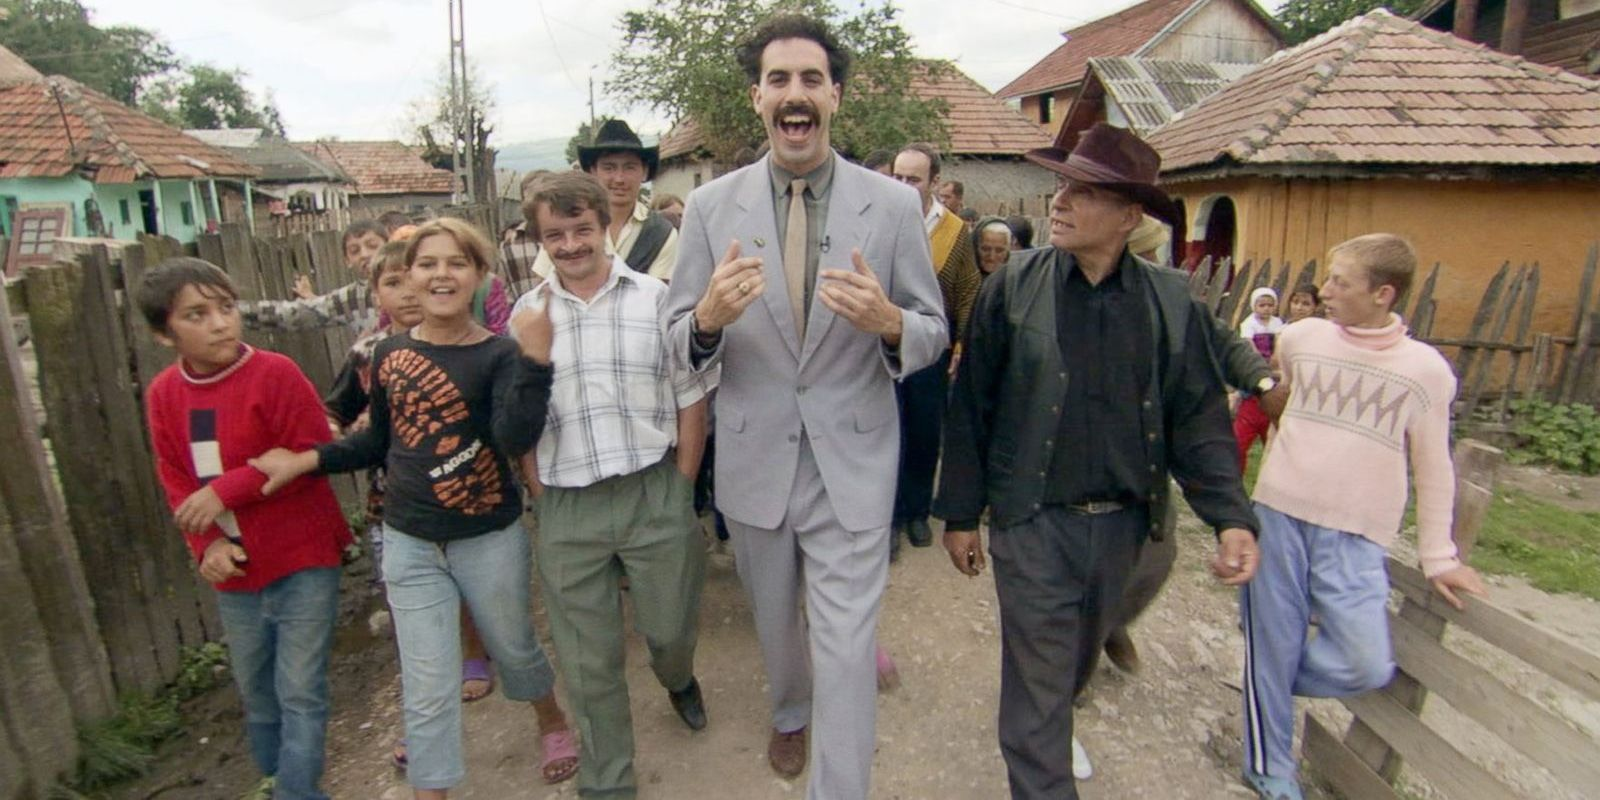 Is Sacha Baron Cohen as Borat 2 about to be released?